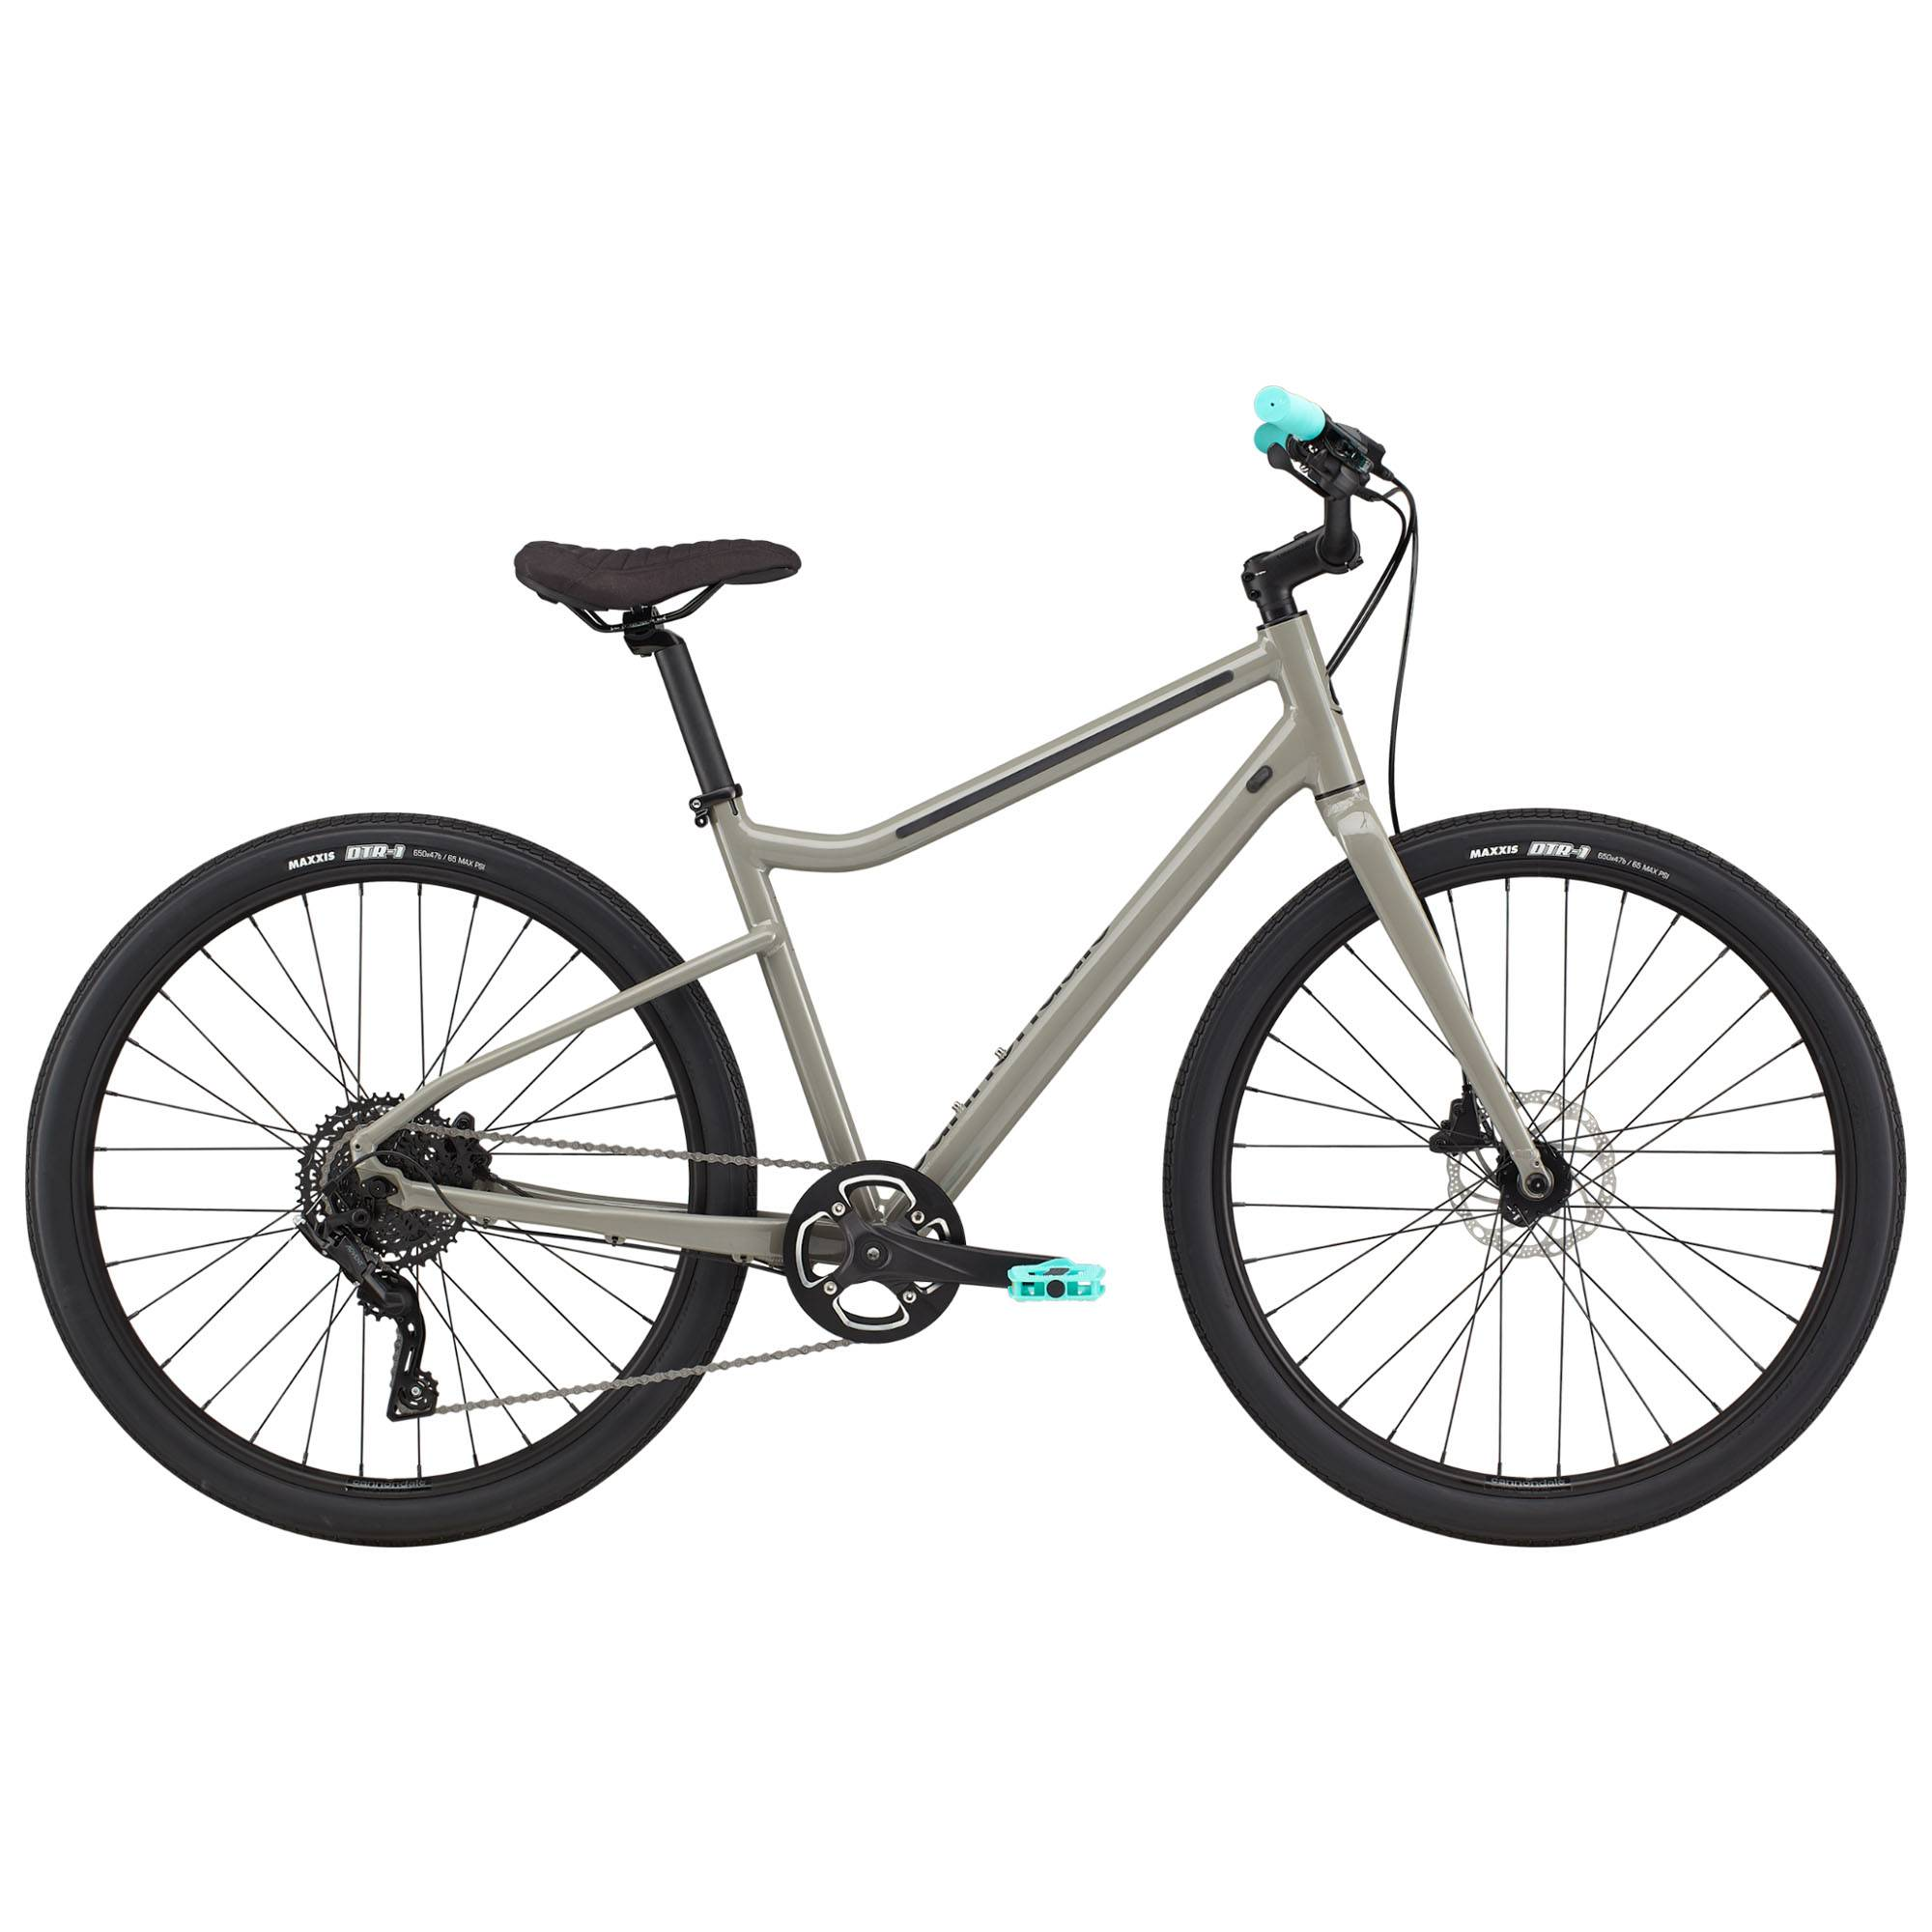 Cannondale Men's Treadwell 2 Urban Bike '21  - Stealth Grey - Size: Small